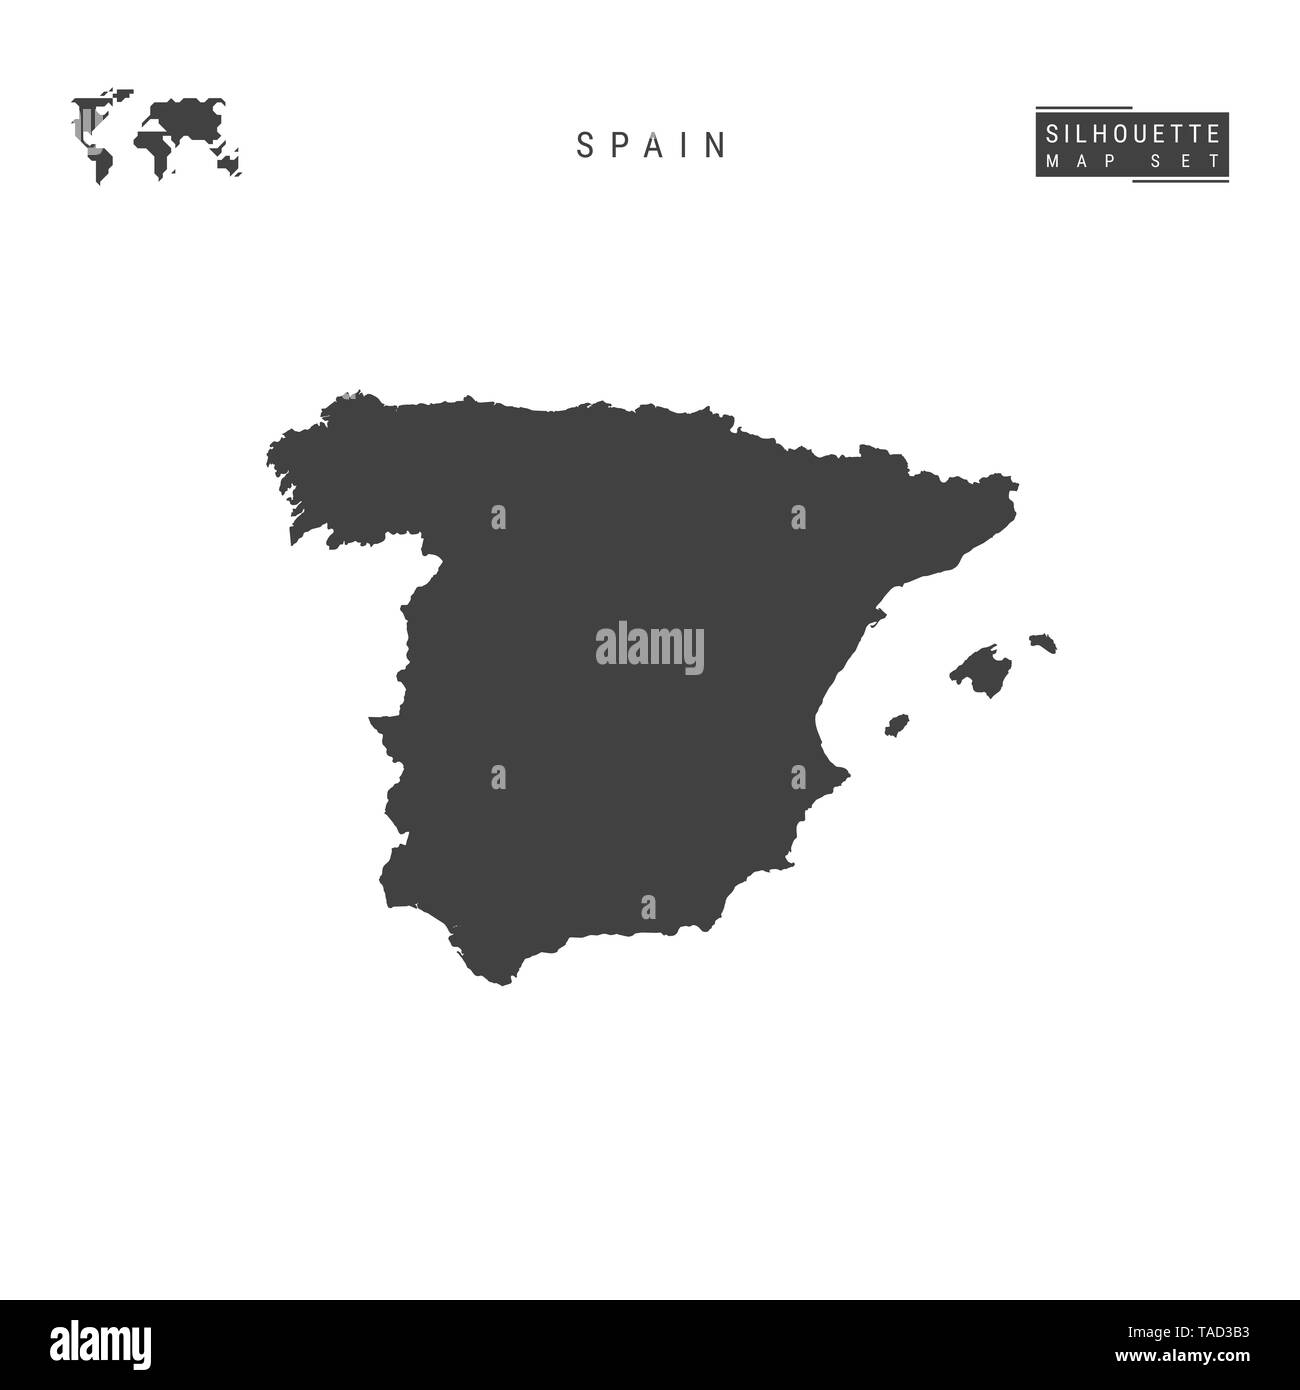 Spain Map Outline Stock Photos Amp Spain Map Outline Stock